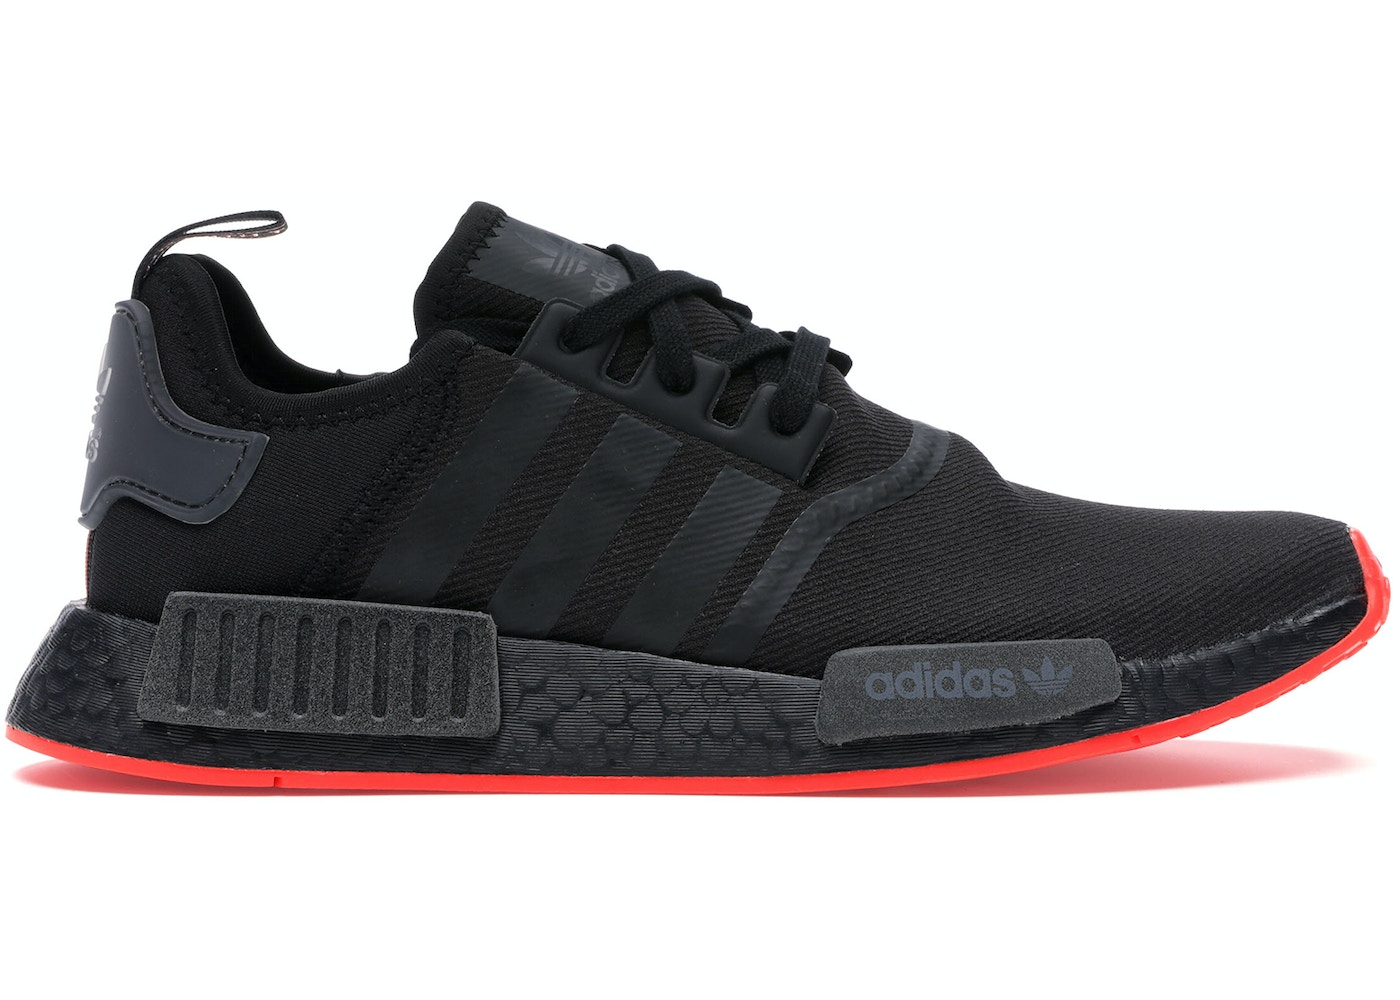 Adidas Nmd R1 Core Black Solar Red F35881